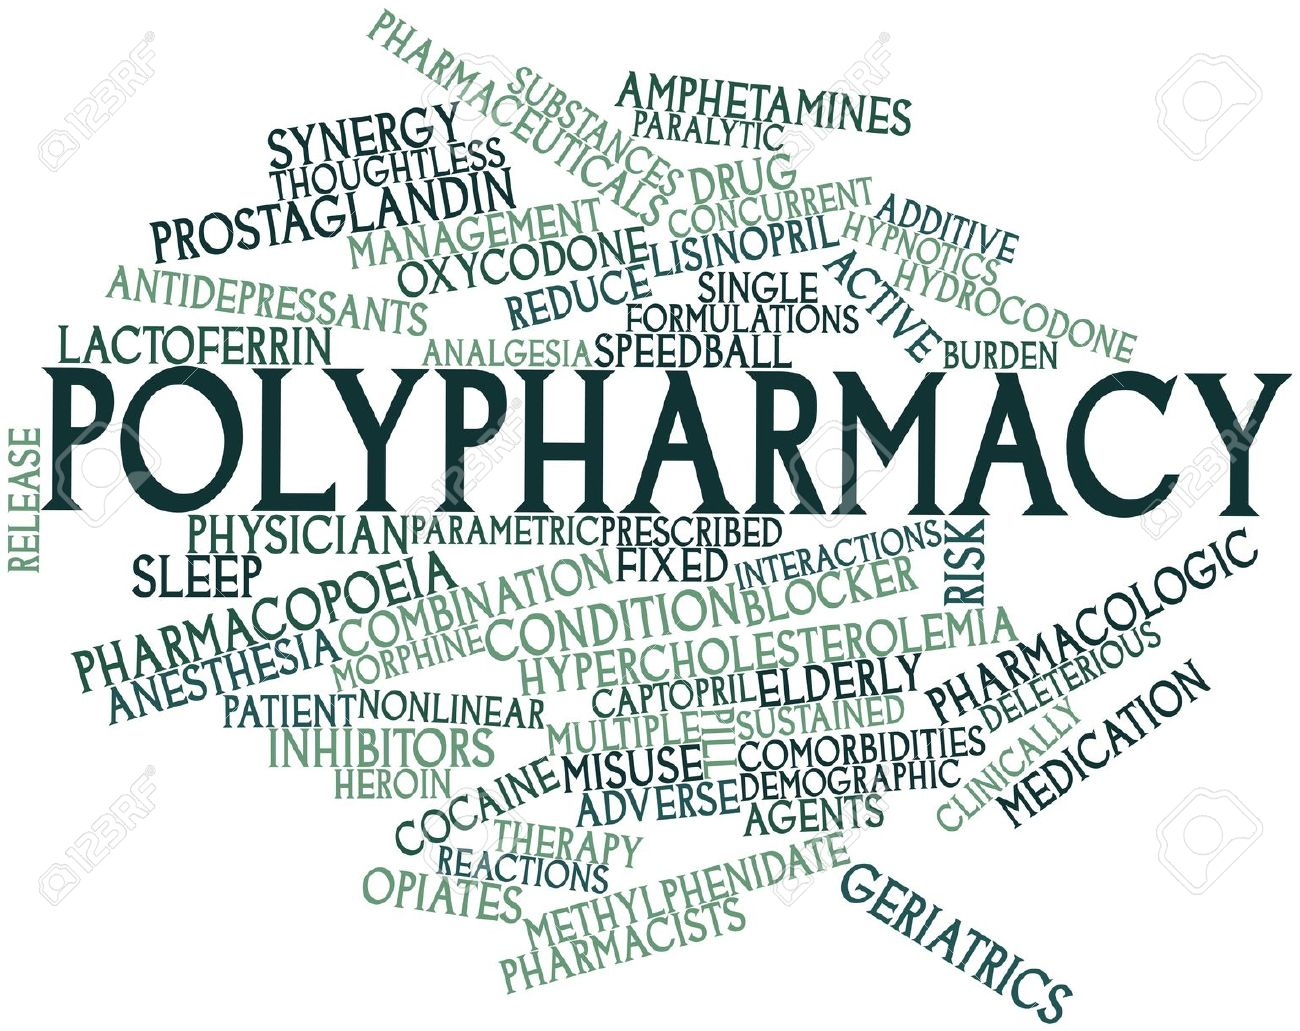 A Case Of Polypharmacy In Elderly